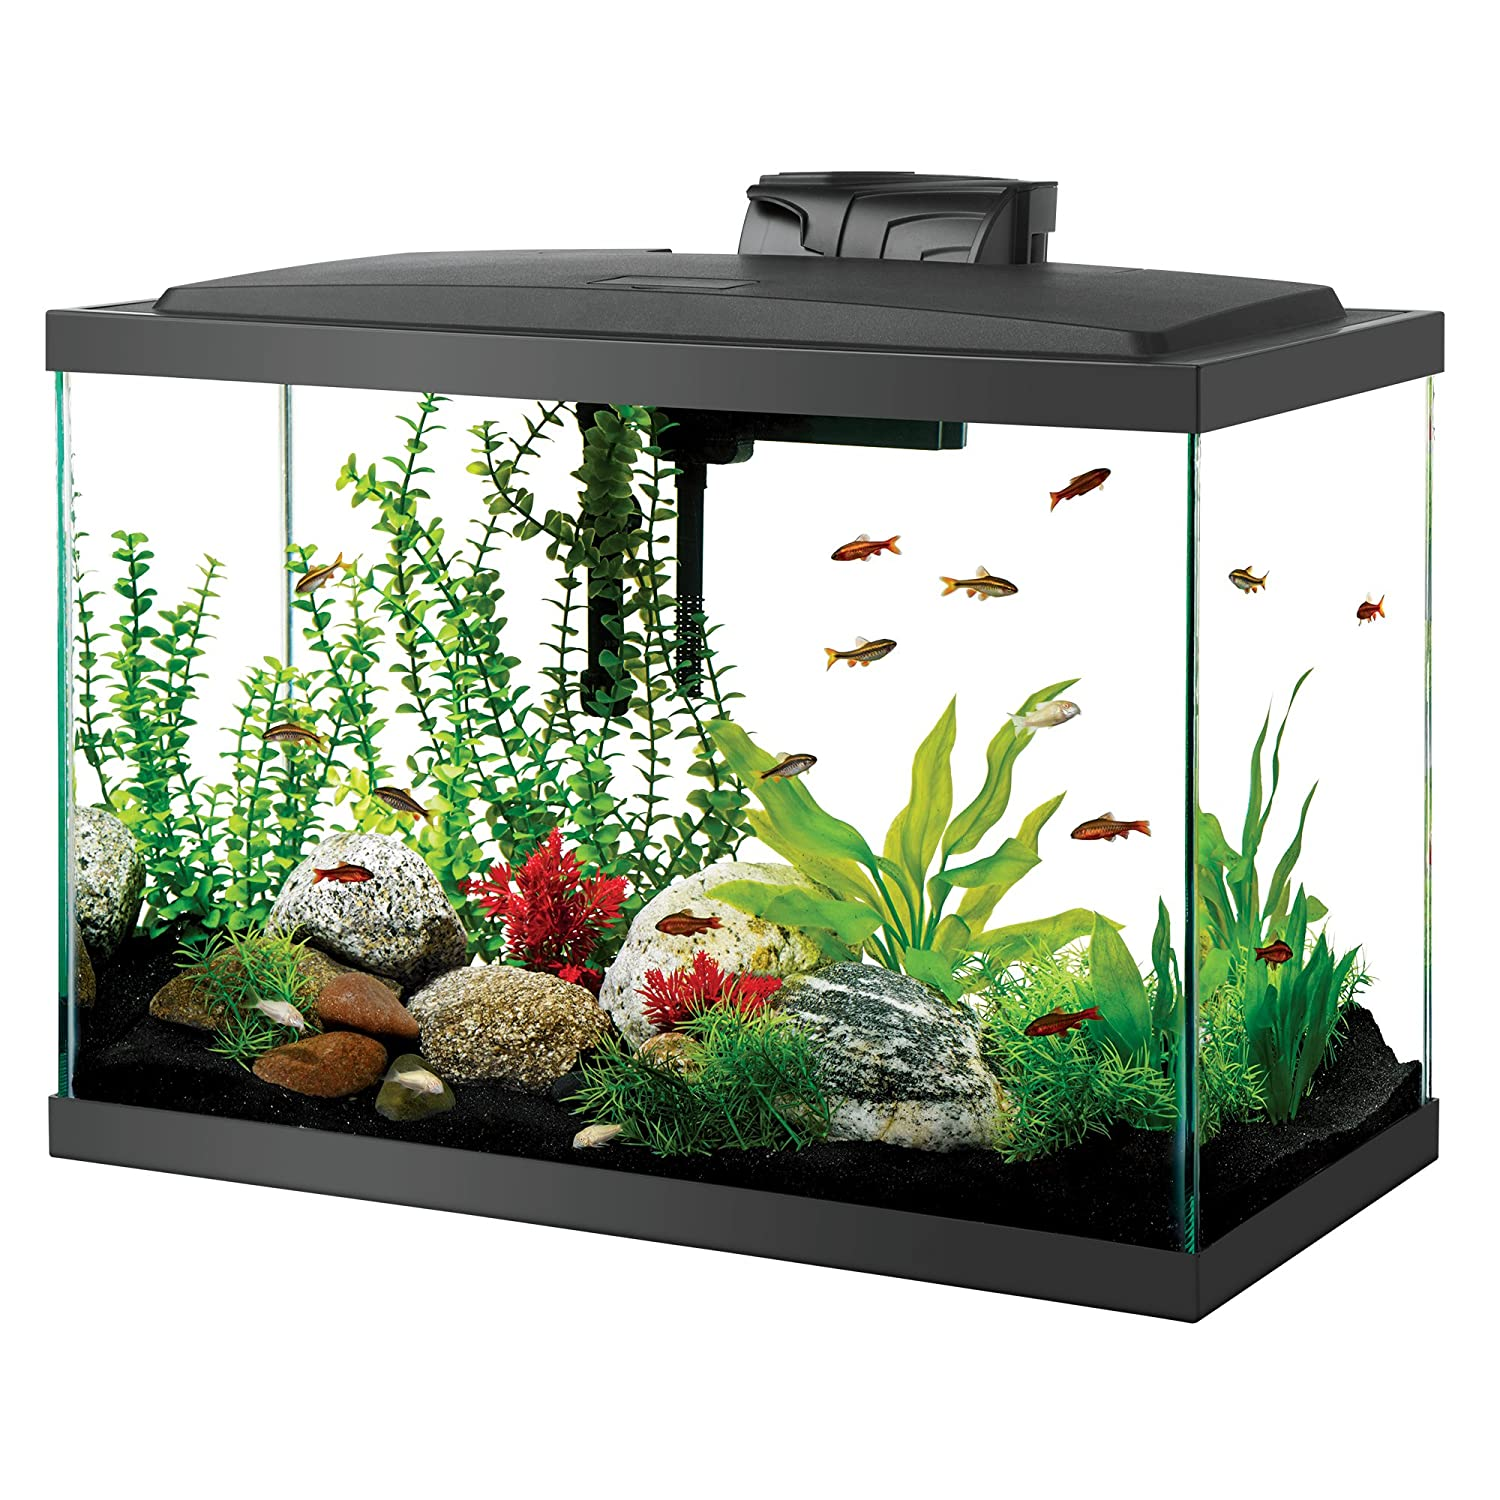 Top 7 best 20 gallon aquariums in 2018 market list for 5 gallon glass fish tank